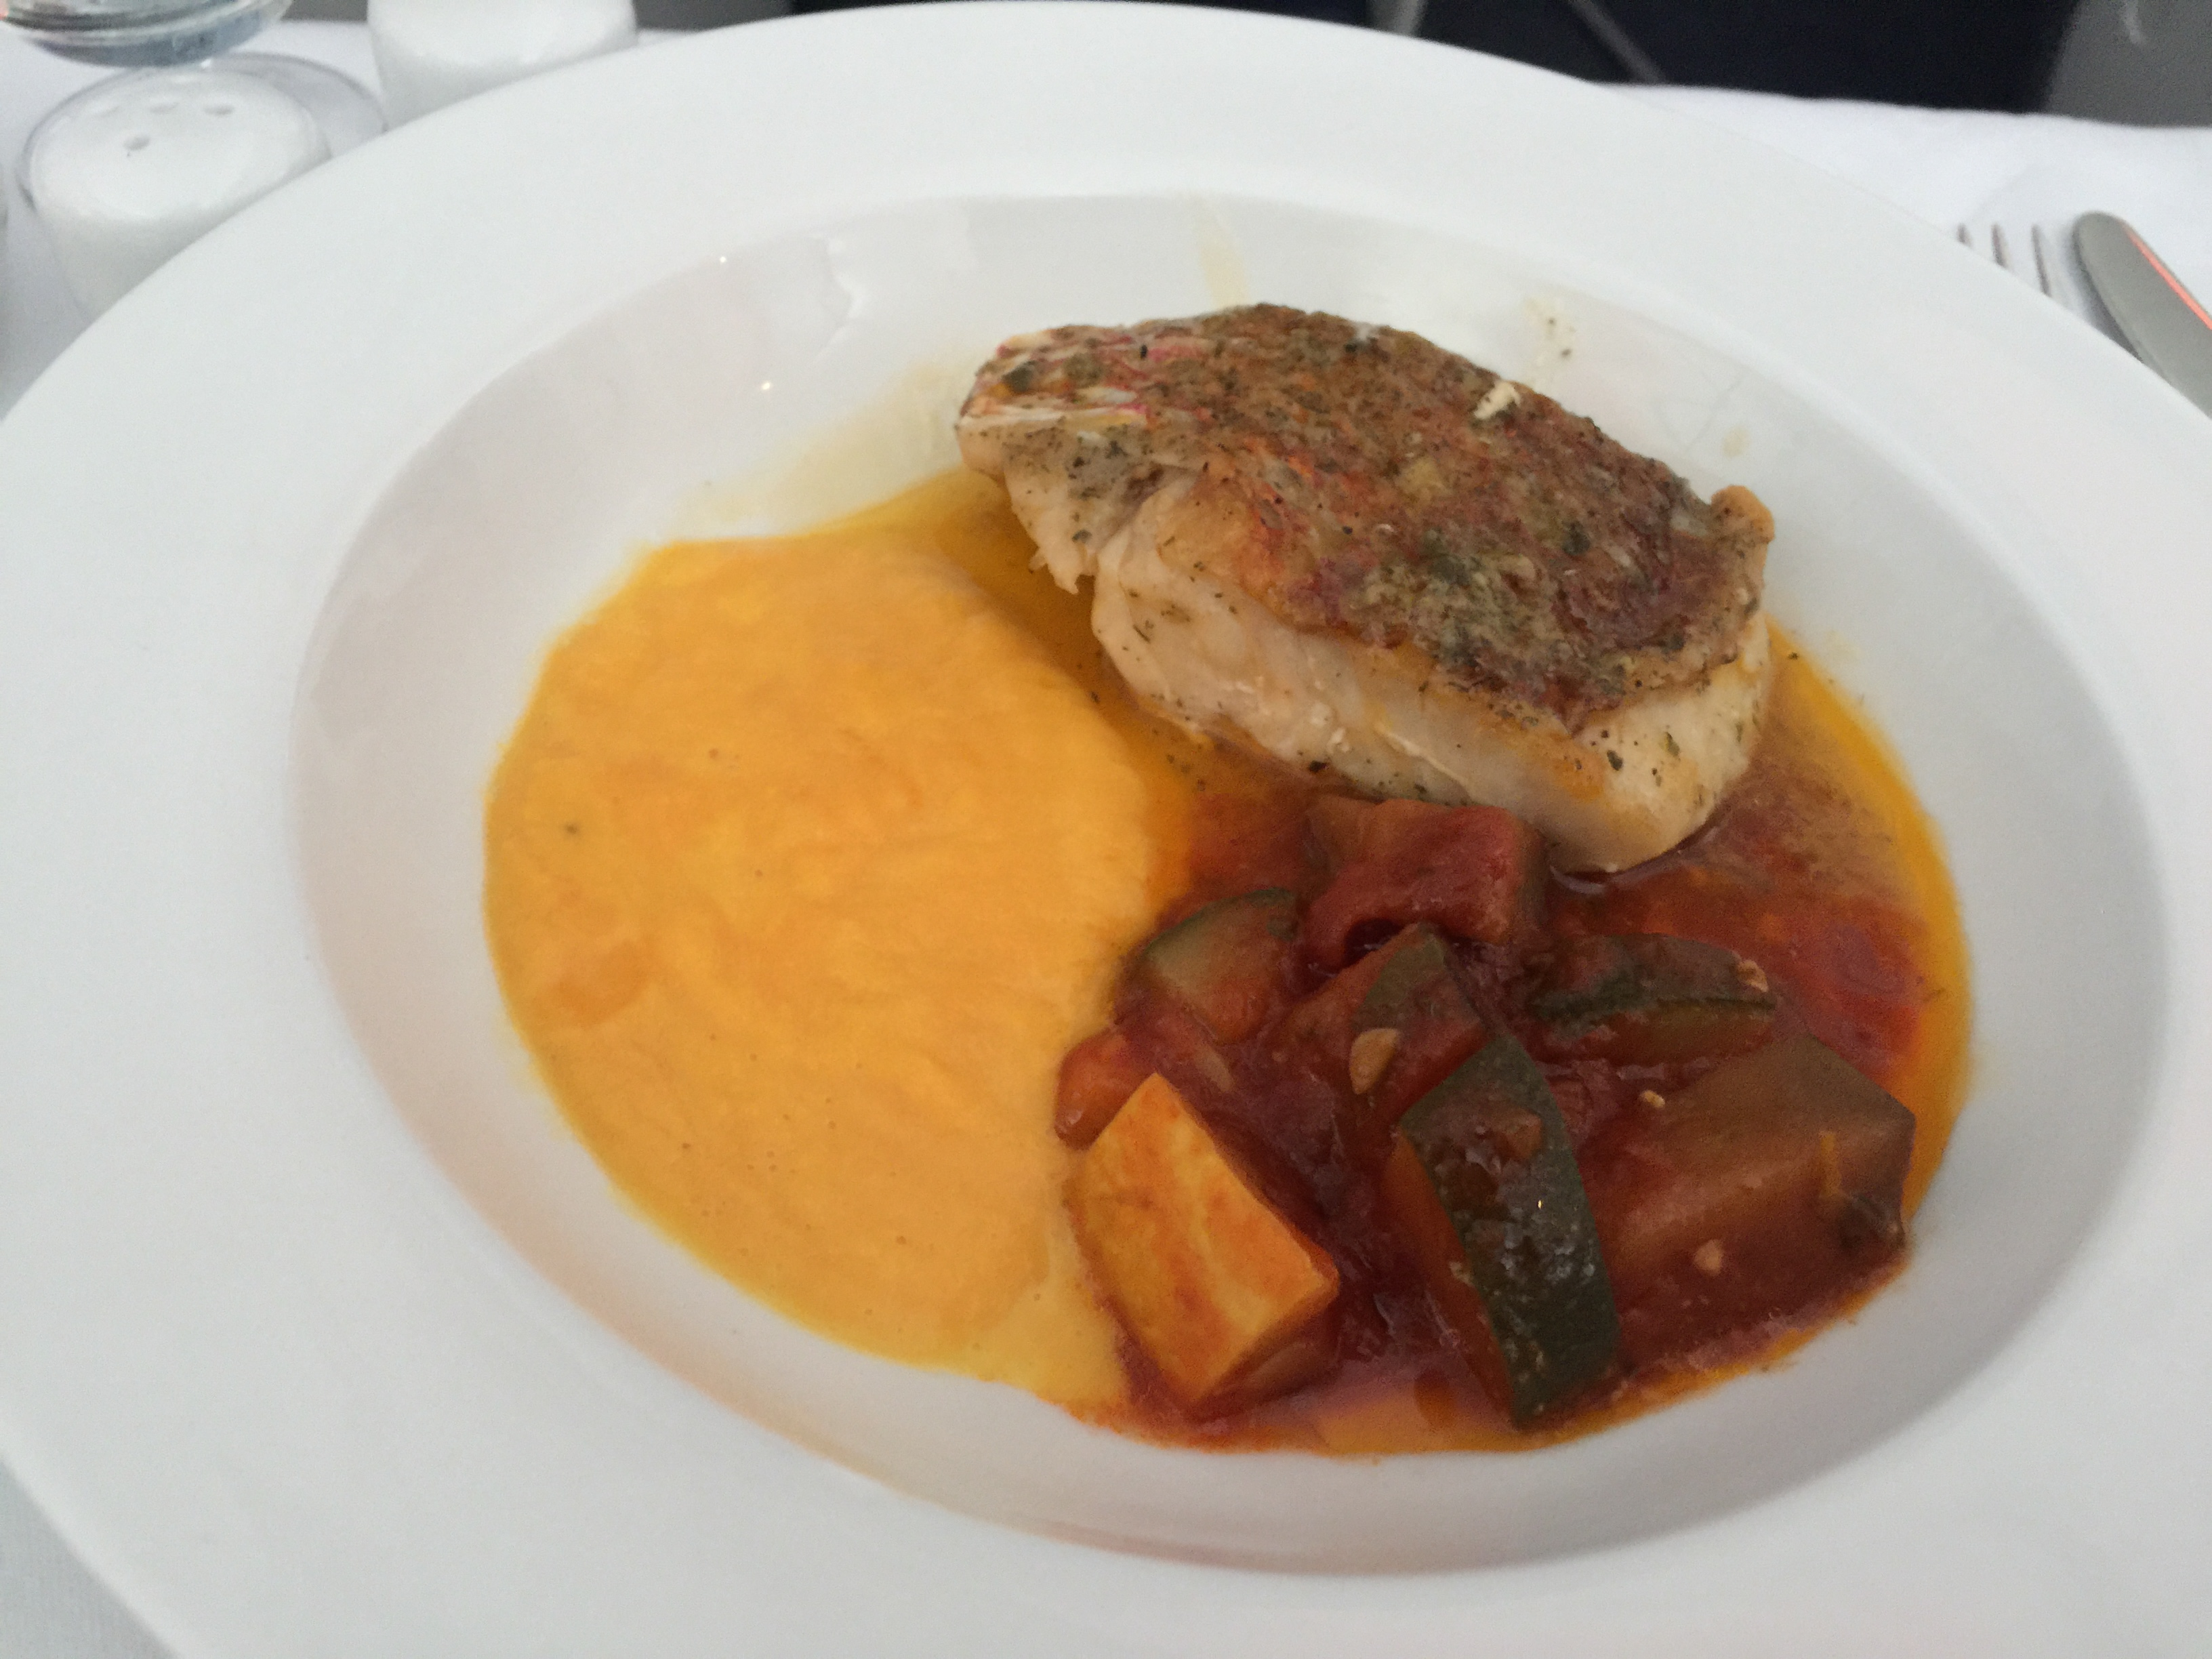 Main course: Grilled Red Snapper with mashed pumpkin and mixed vegetables, served with Cafe de Paris sauce